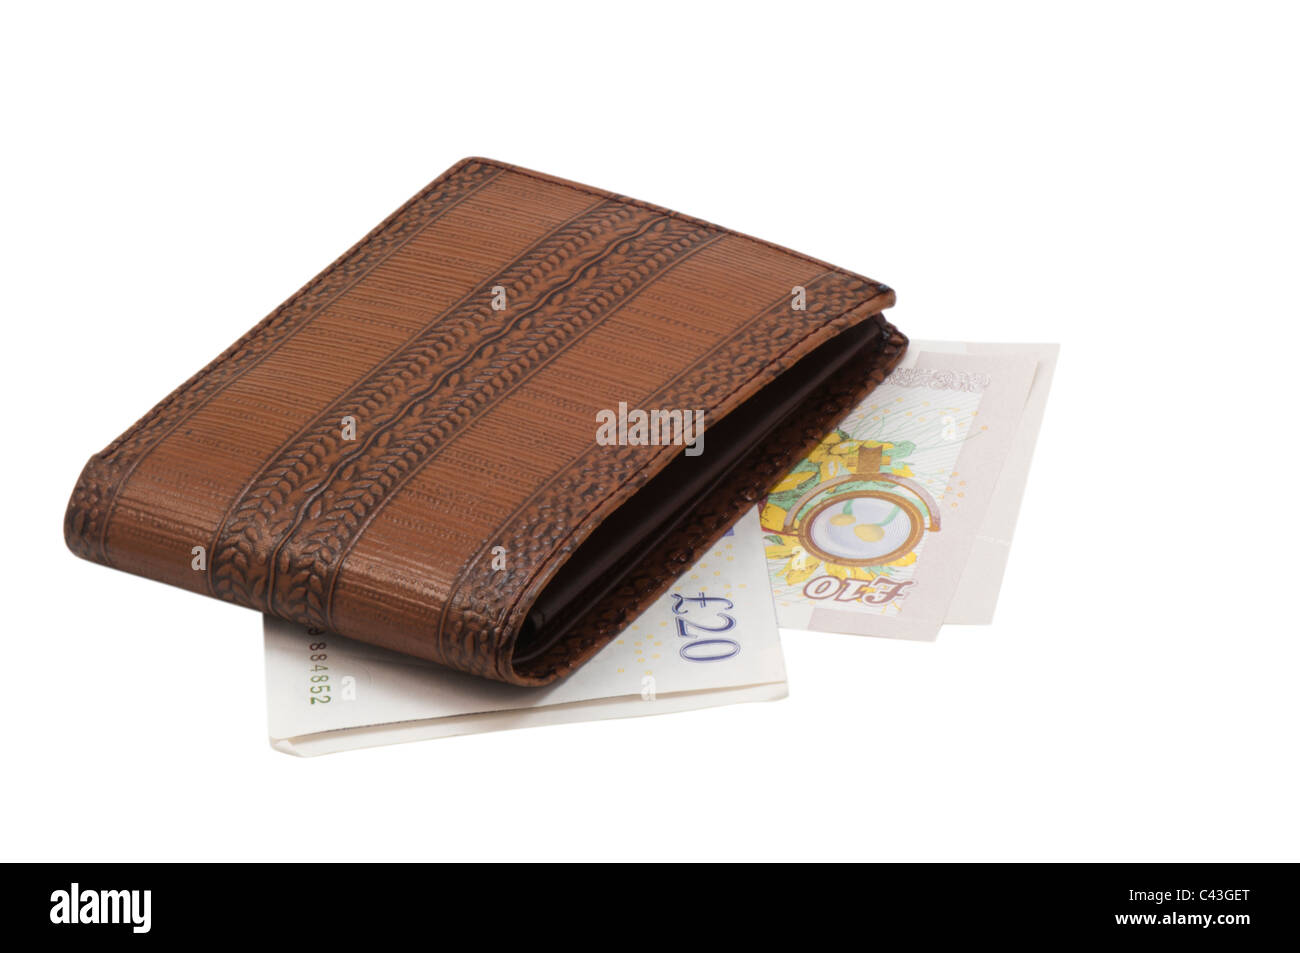 Currency notes and wallet - Stock Image